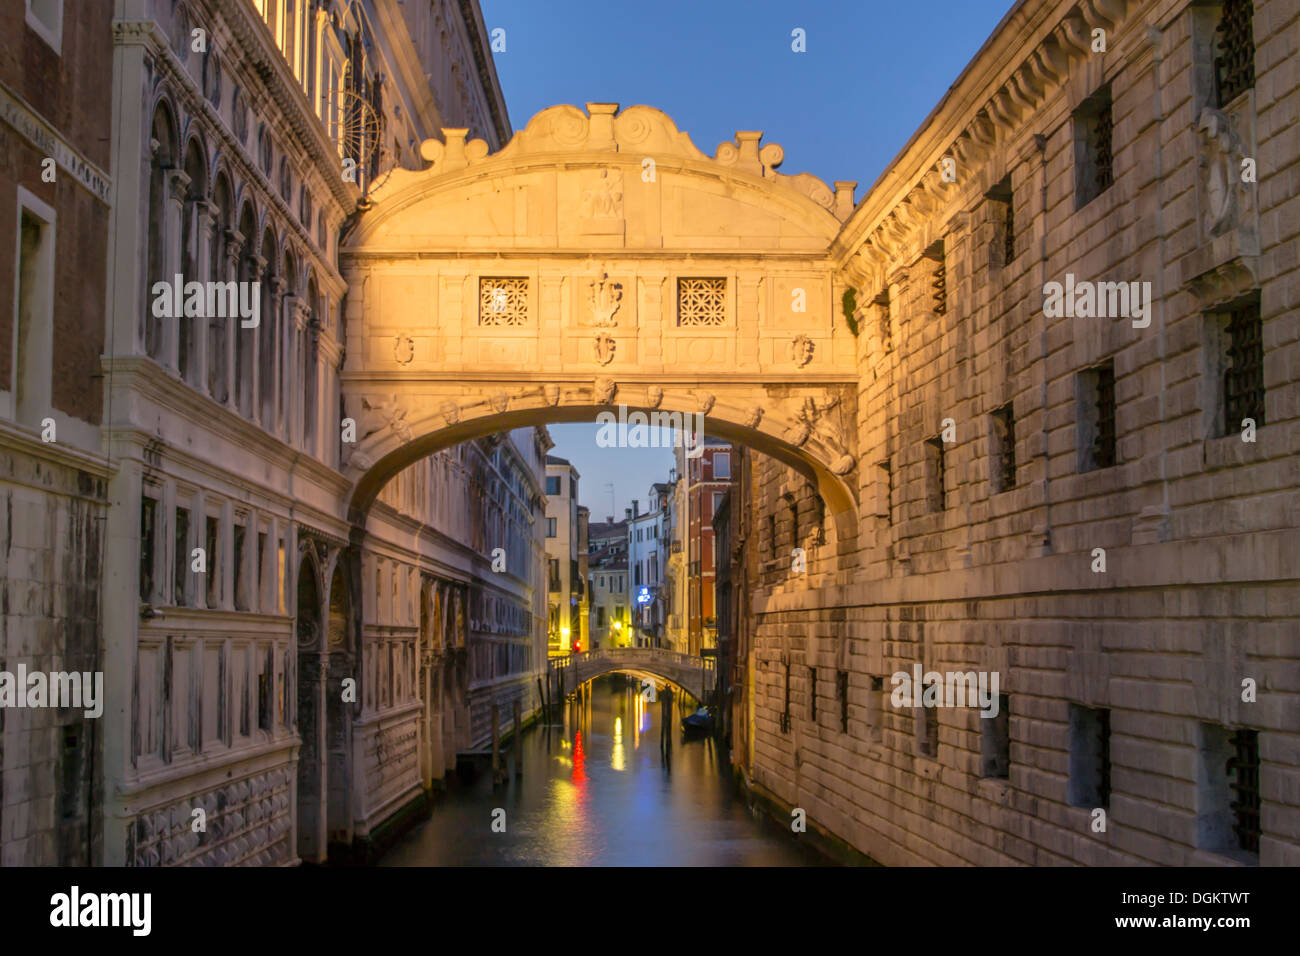 A view of the Bridge of Sighs in Venice after sunset. - Stock Image